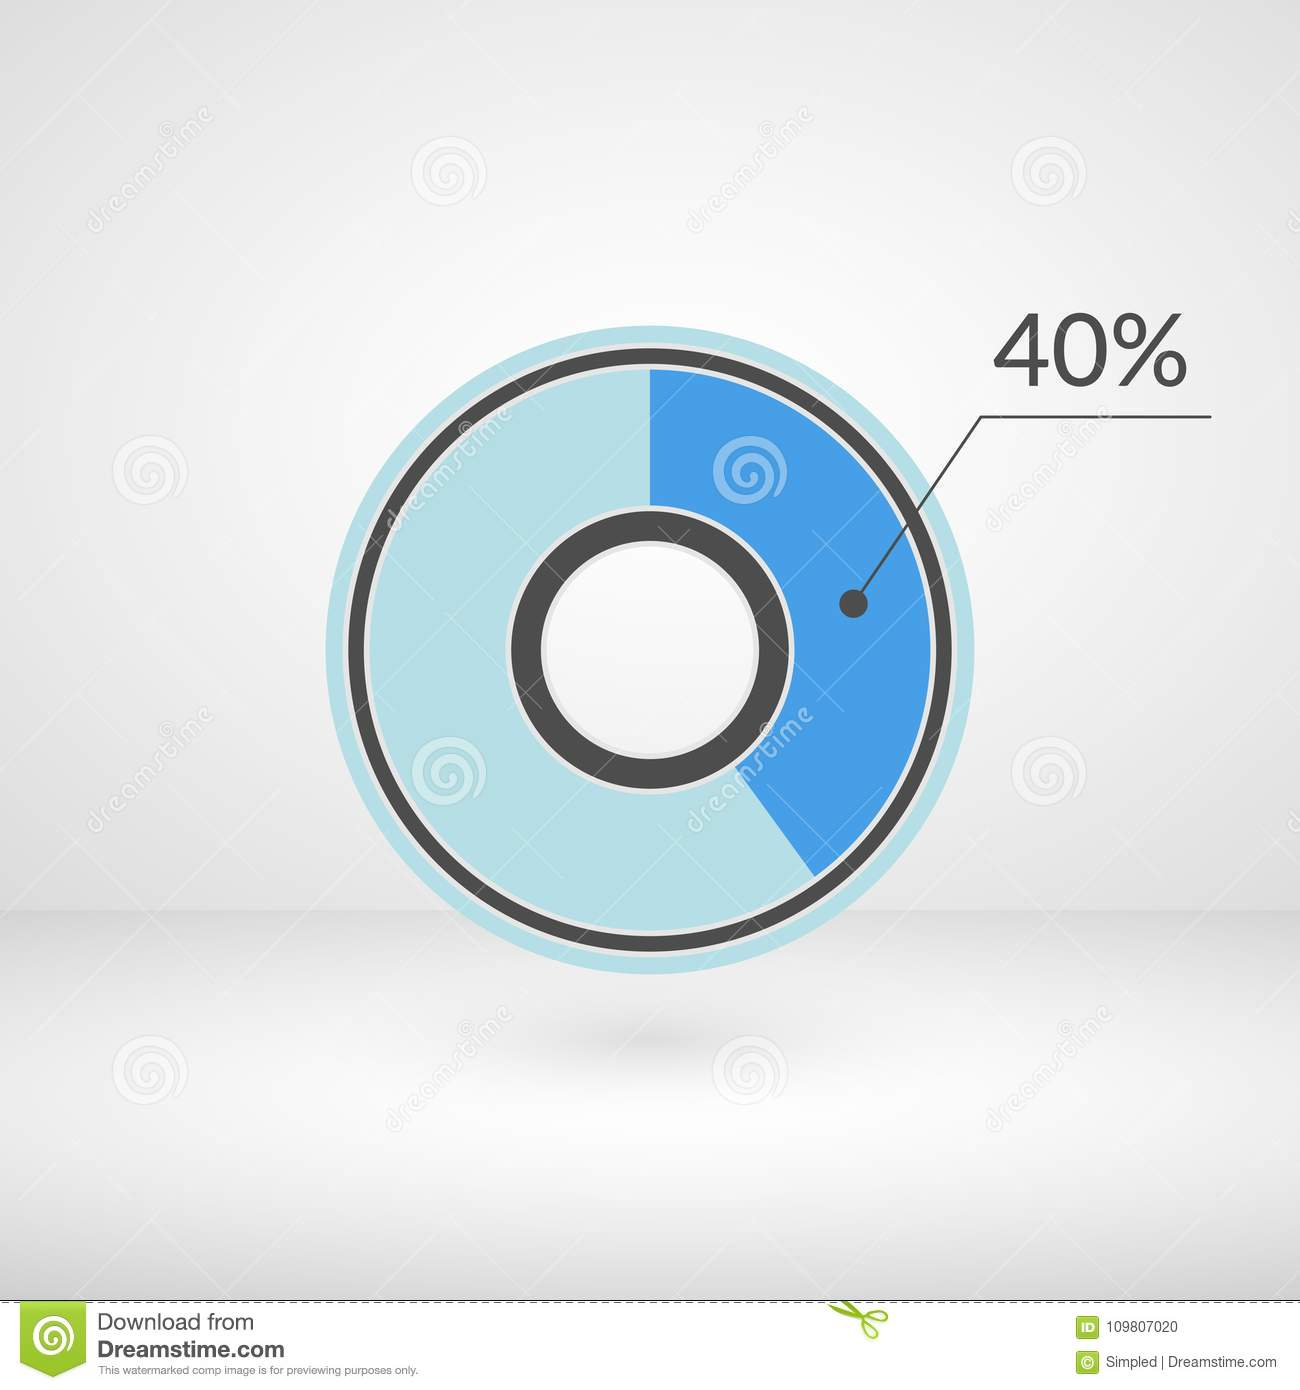 40 Percent Pie Chart Isolated Symbol Percentage Vector Infographic